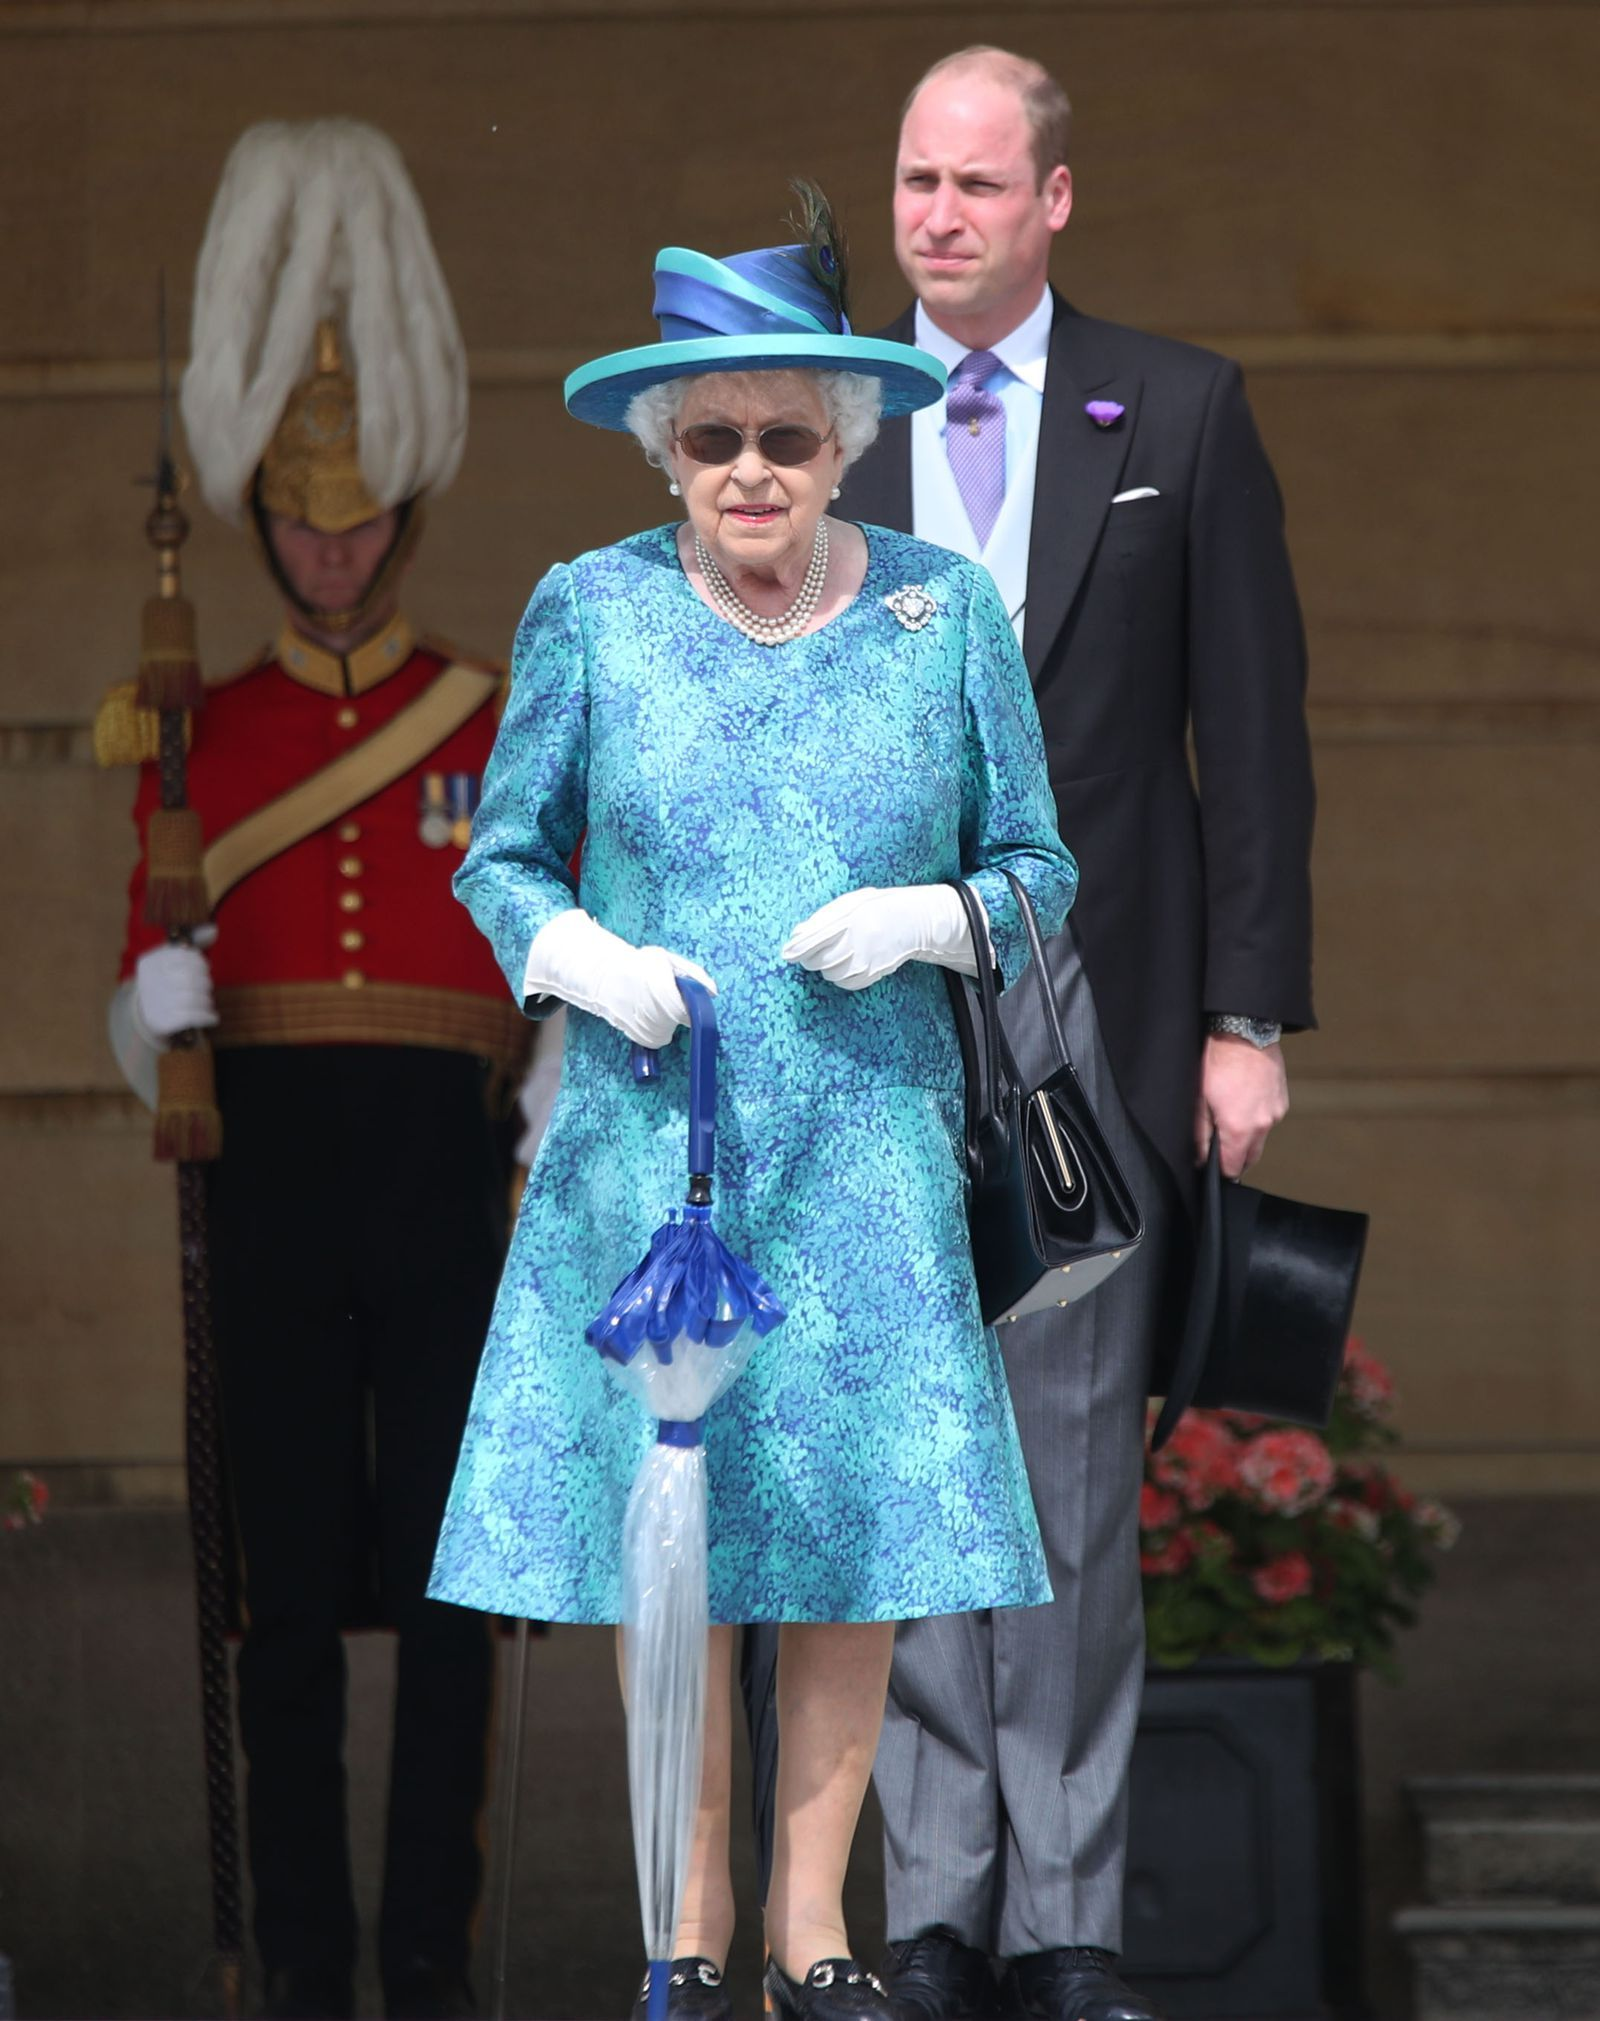 The Queen Is Wearing Sunglasses Today And It S The Greatest Thing Ever Queen Elizabeth Her Majesty The Queen Queen Elizabeth Ii [ 2021 x 1600 Pixel ]